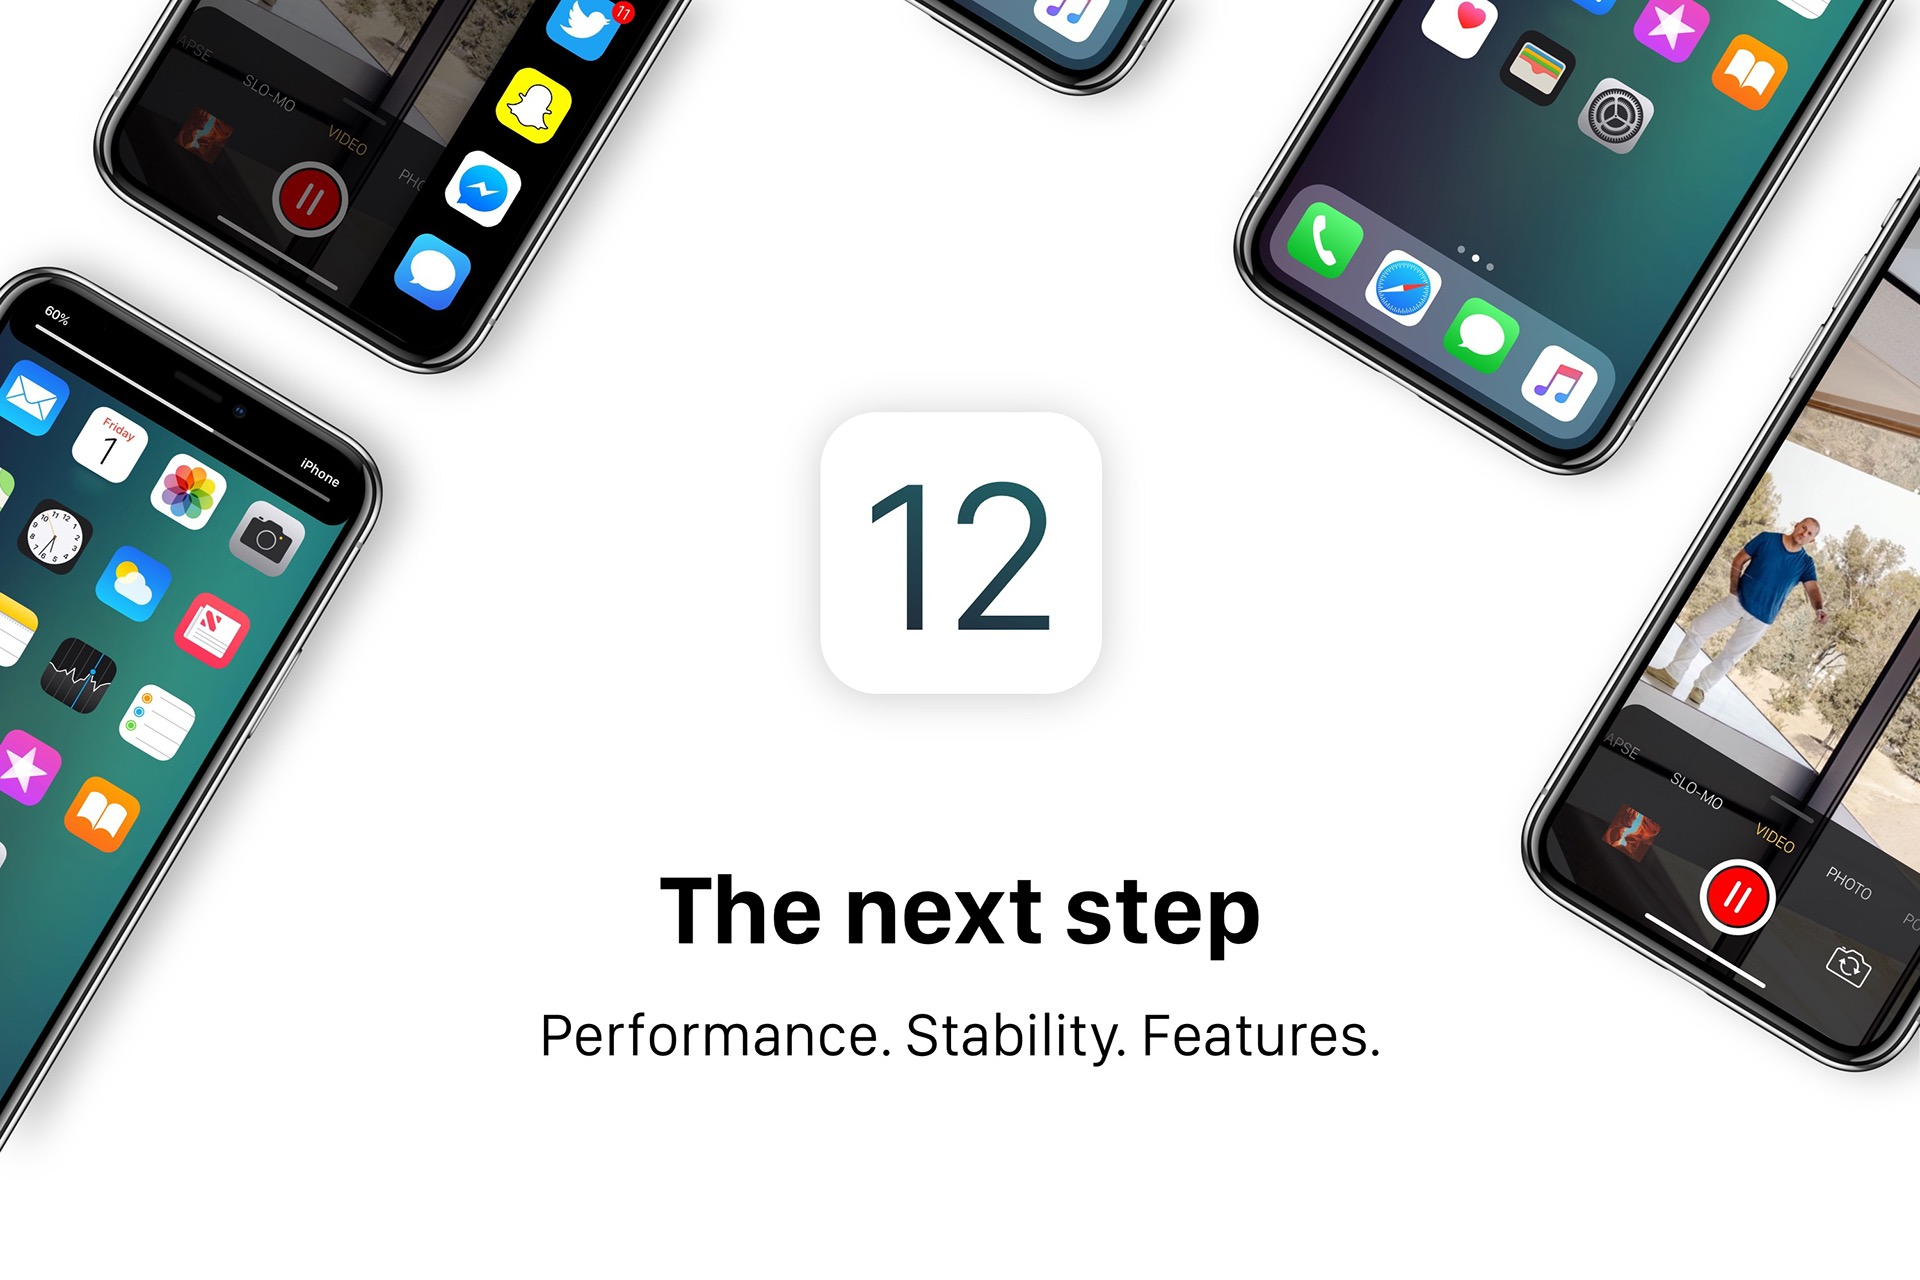 This iOS 12 Concept Imagines a Guest Mode, iPhone Split View and More